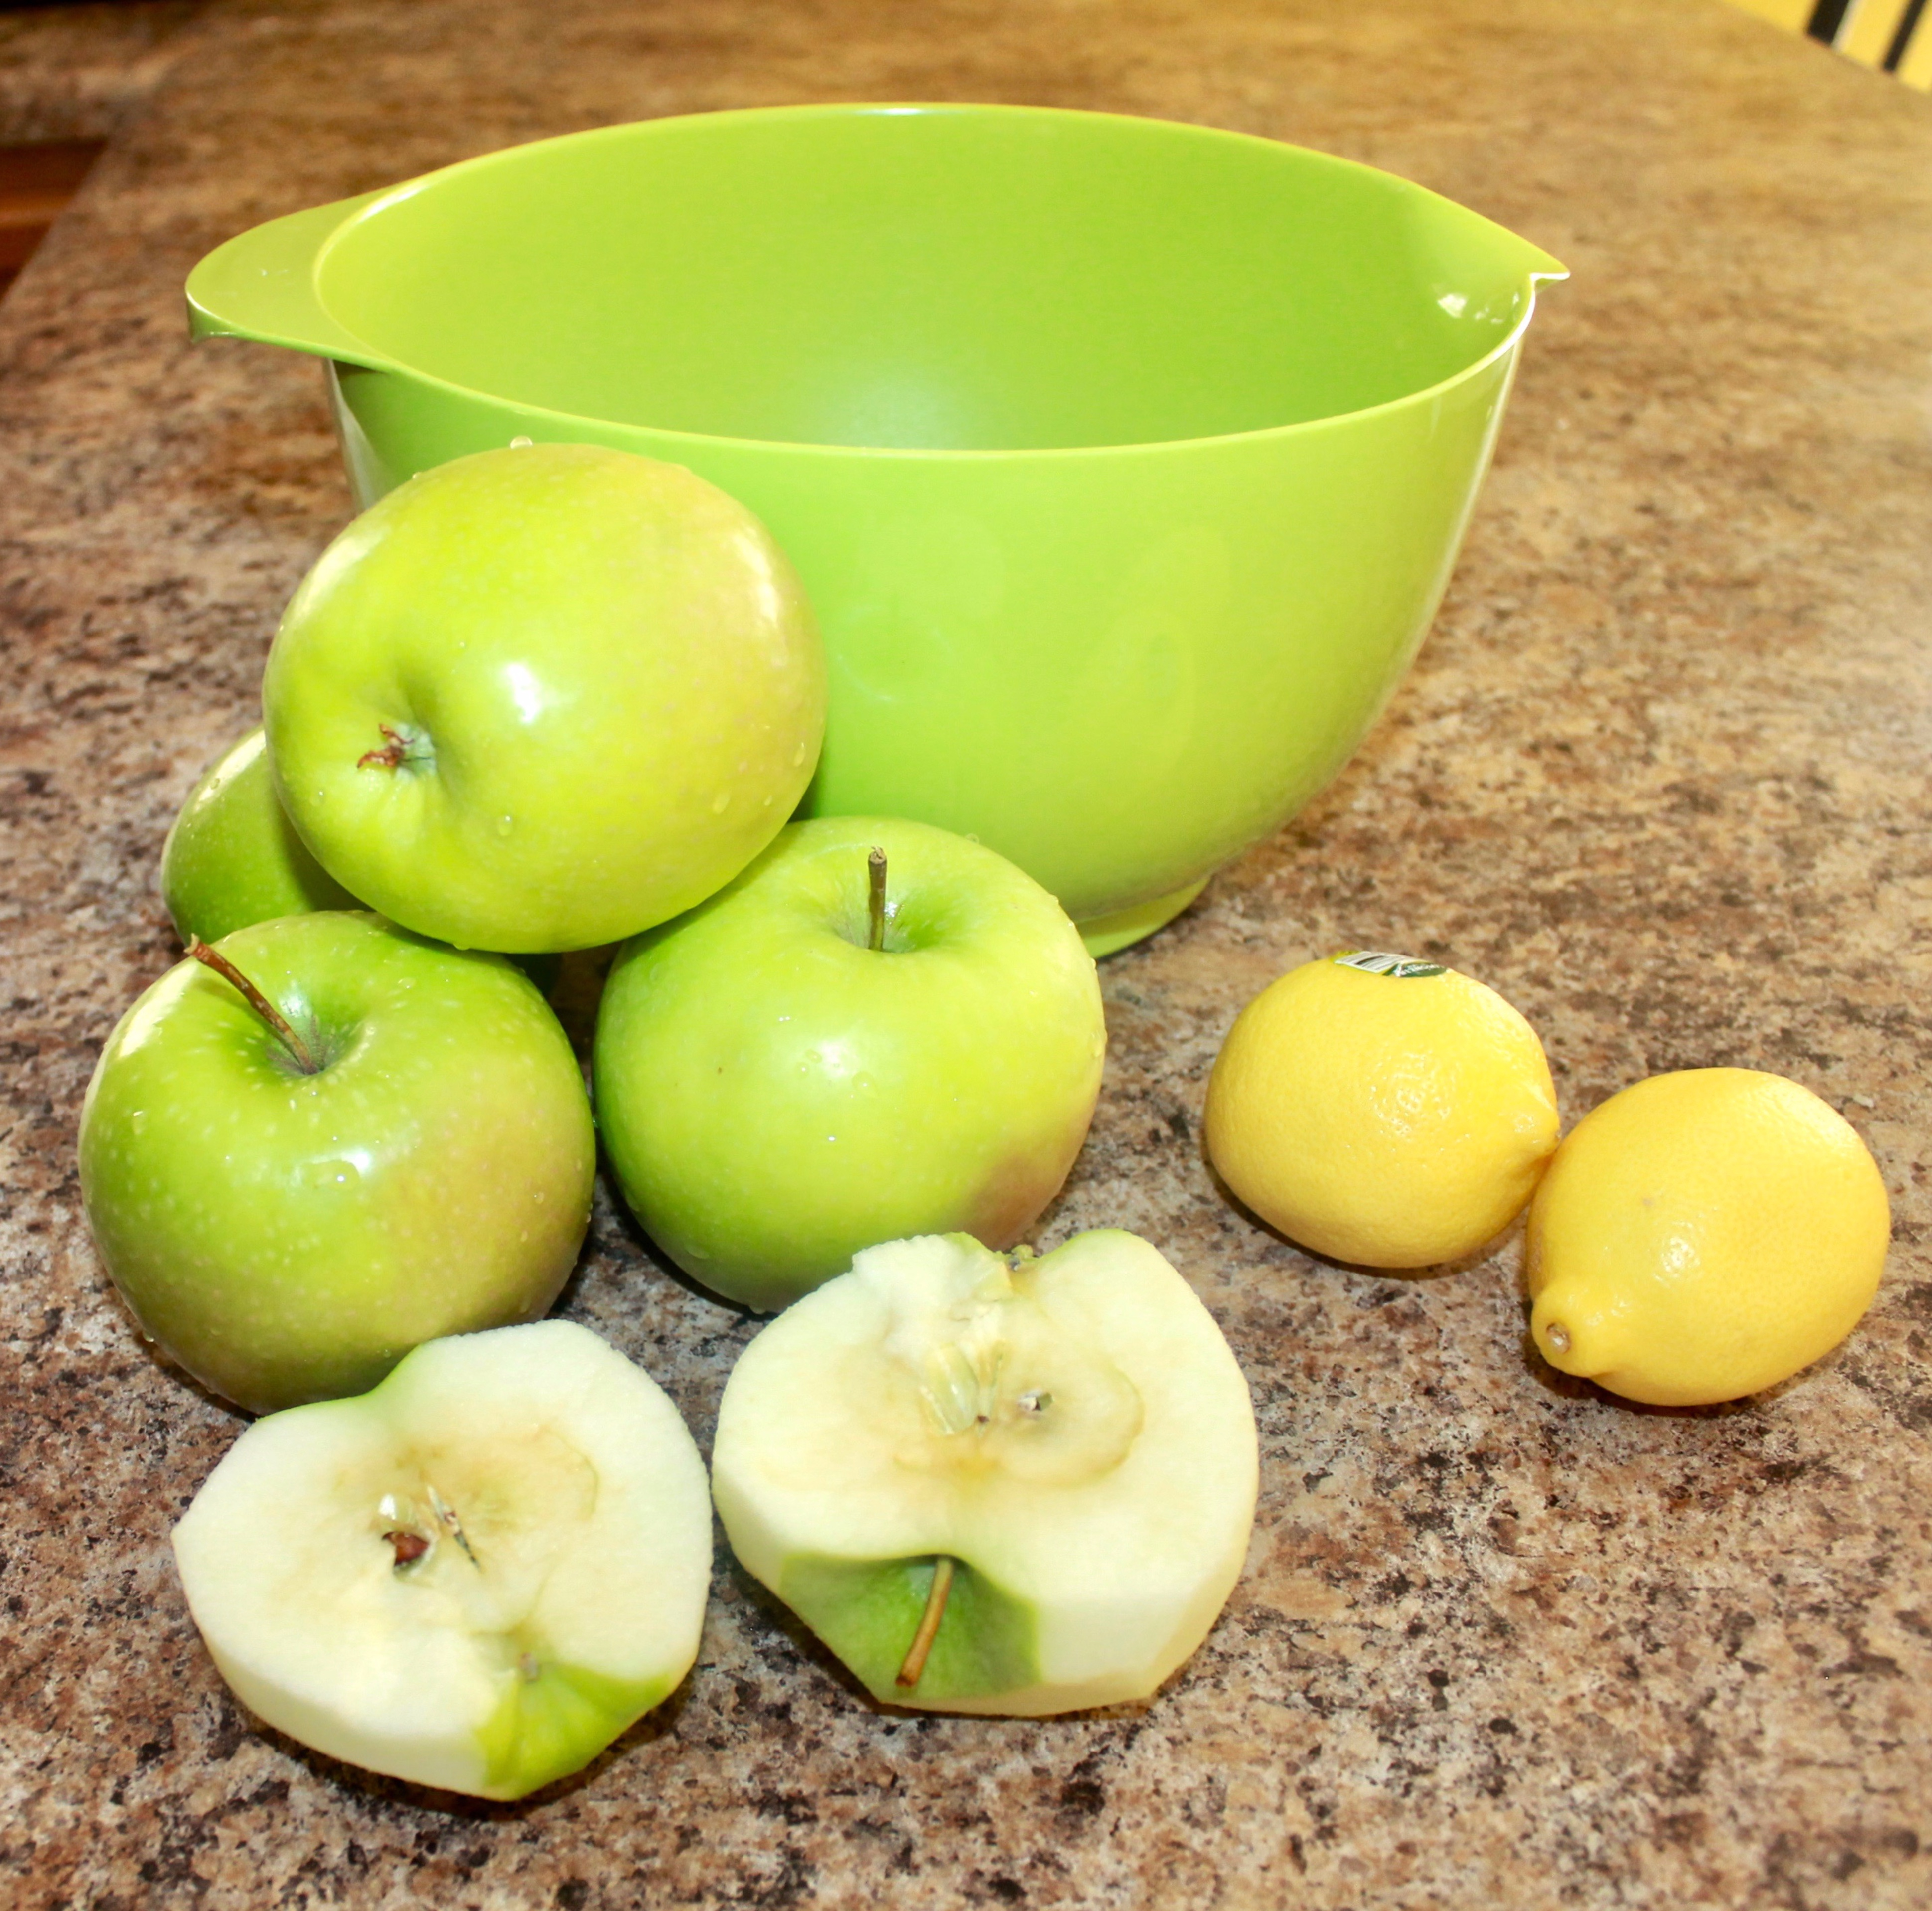 Granny Smith Apples are the best apples for Apple Pies